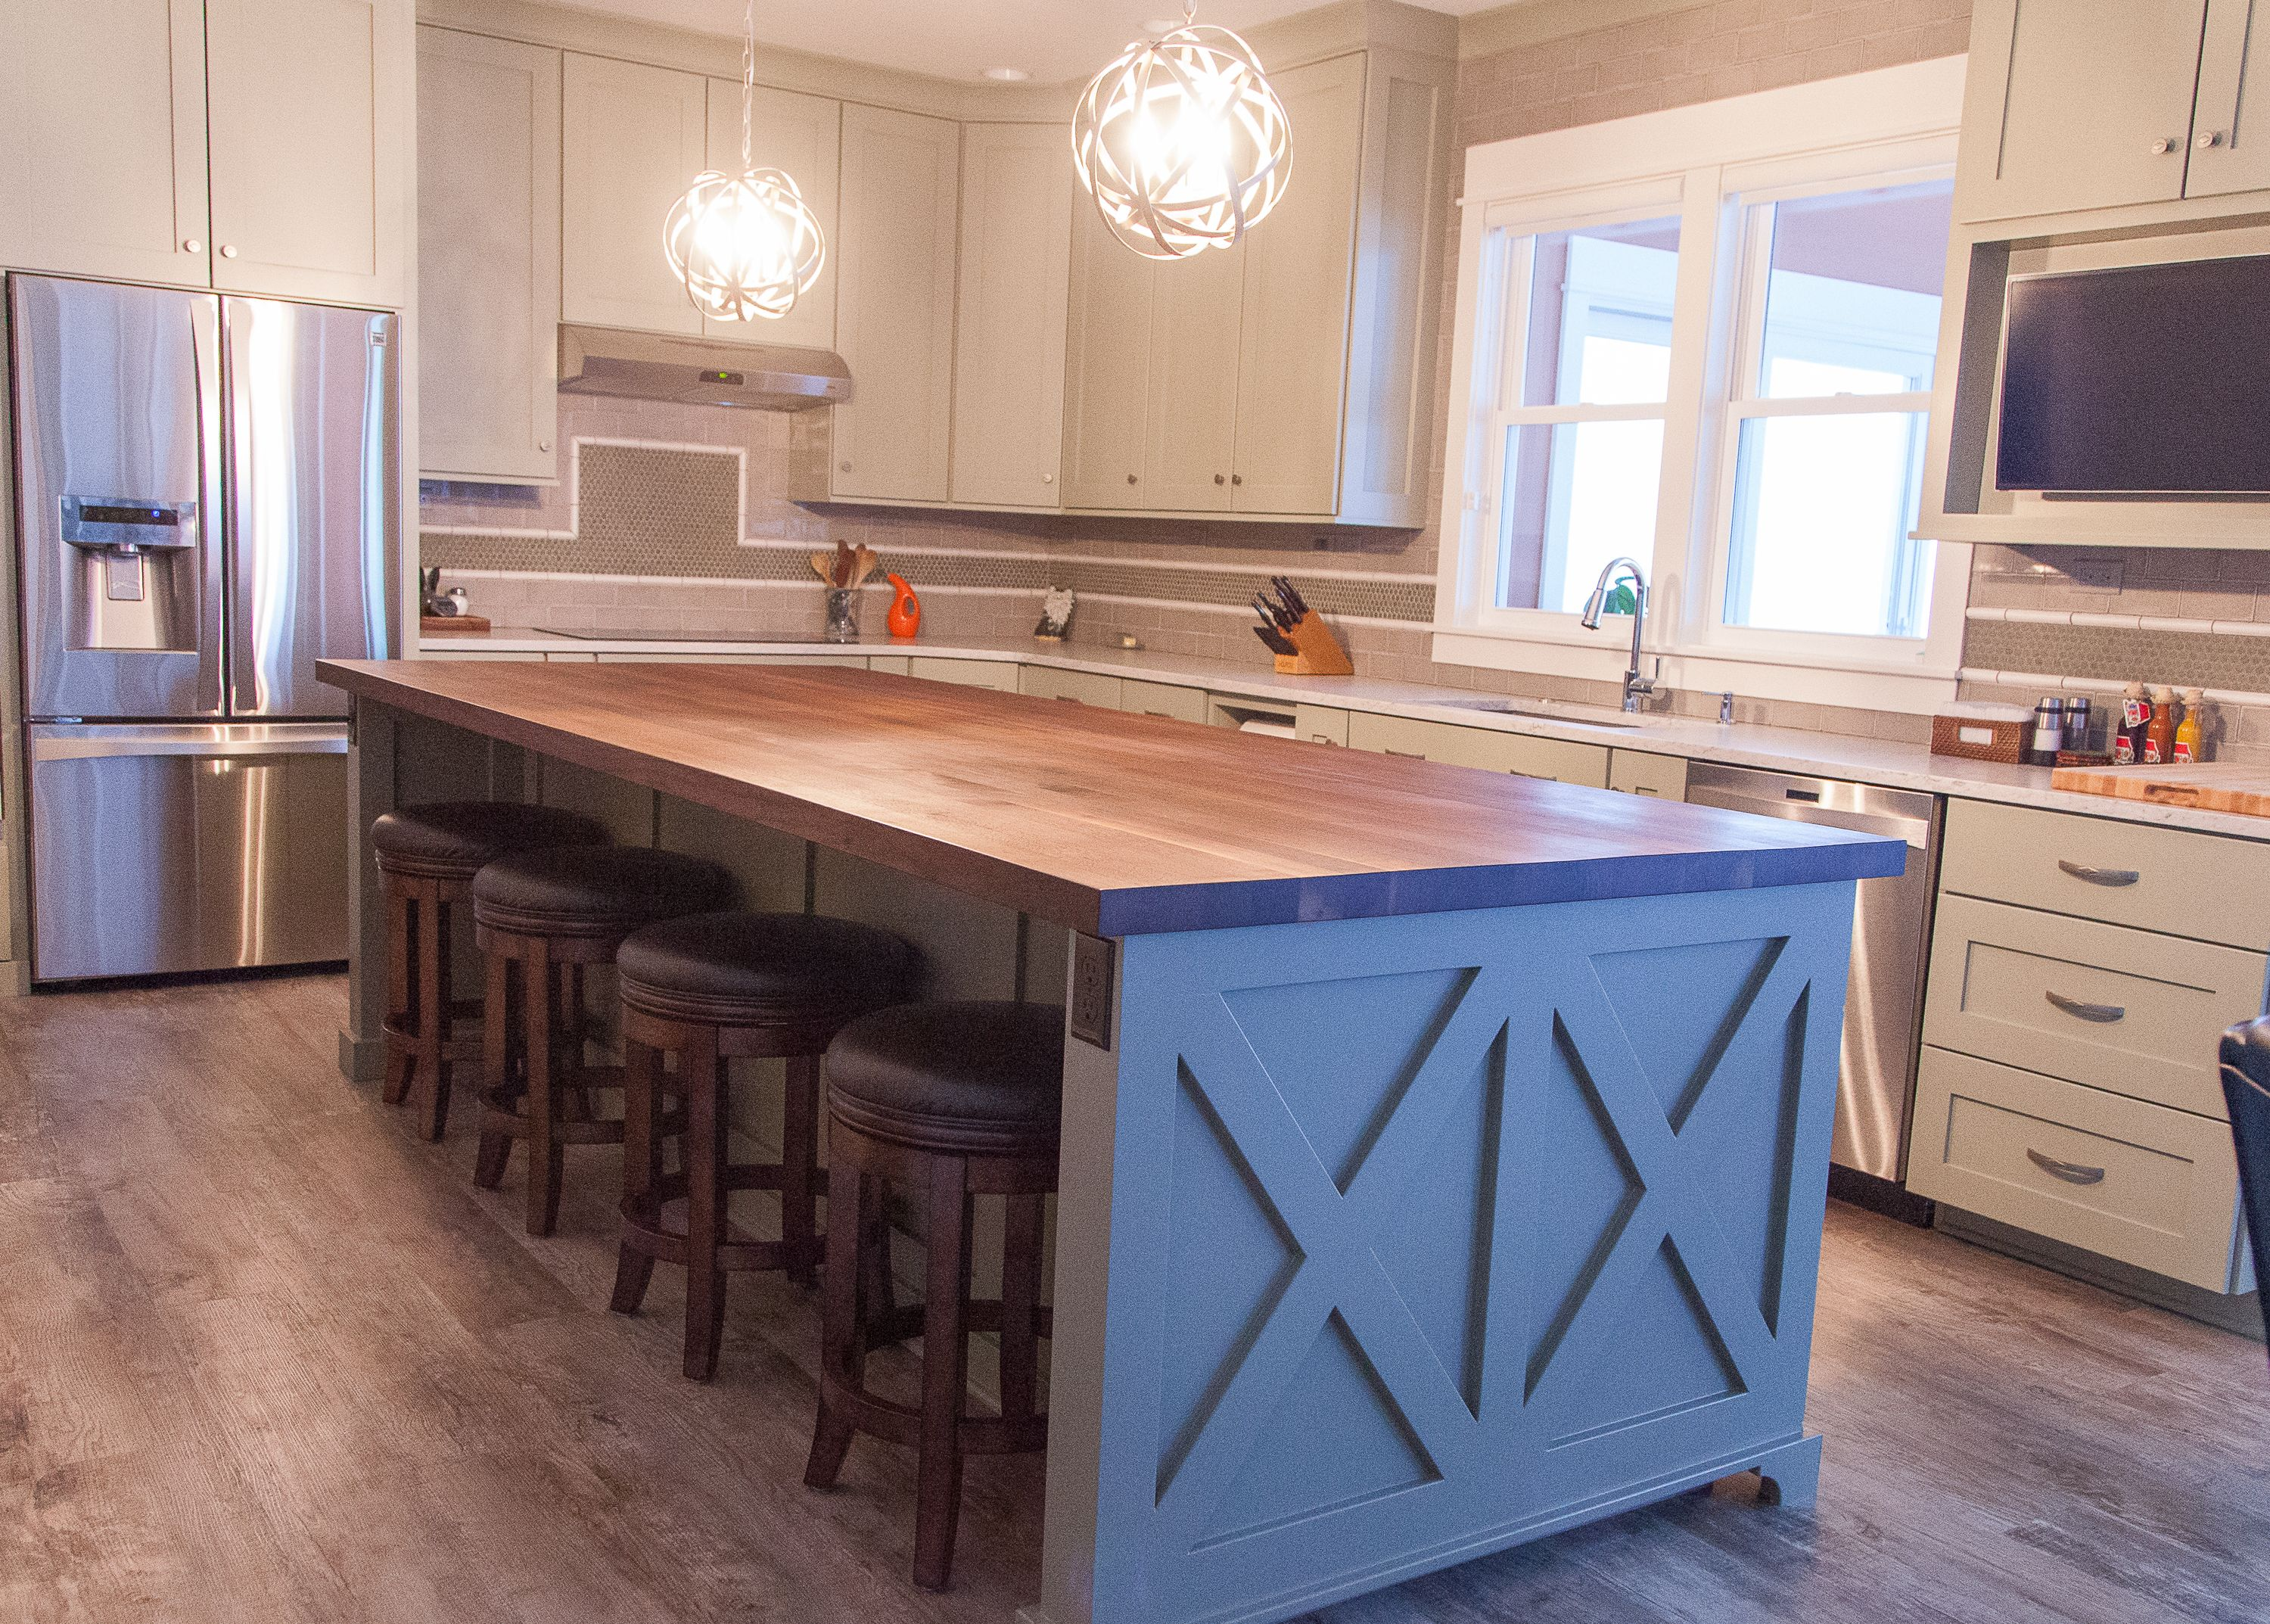 Oak Kitchen Carts And Islands Farmhouse chic sleek walnut butcher block countertop barn wood farmhouse chic sleek walnut butcher block countertop barn wood kitchen island stainless steel appliances workwithnaturefo